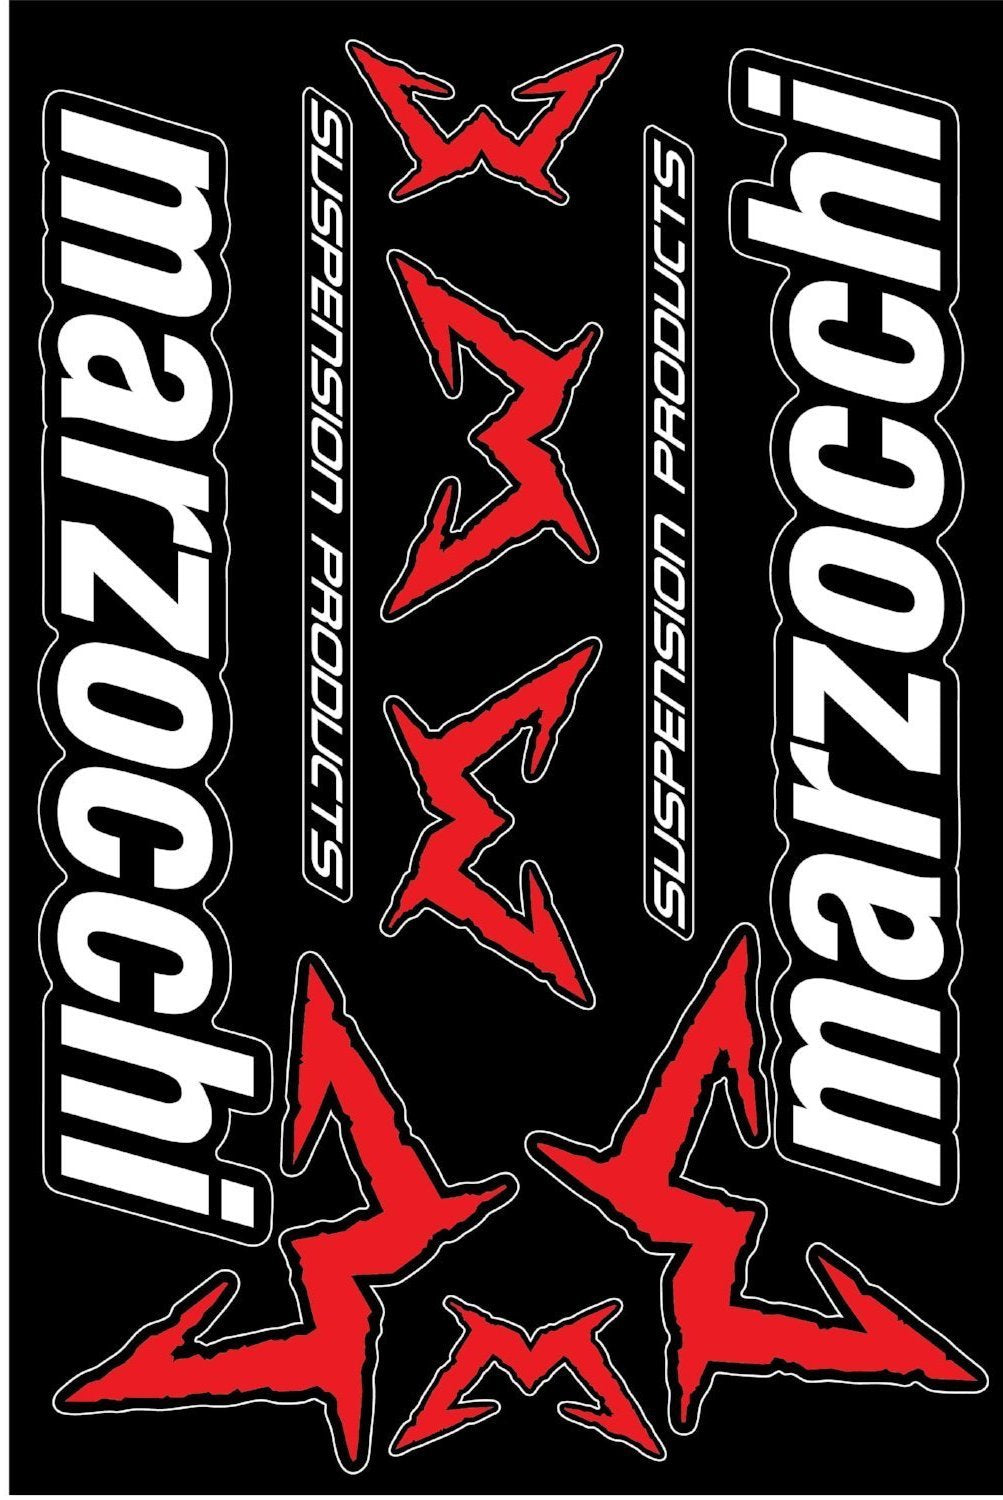 Marzocchi  self-adhesive sticker for a bike - crno crvena